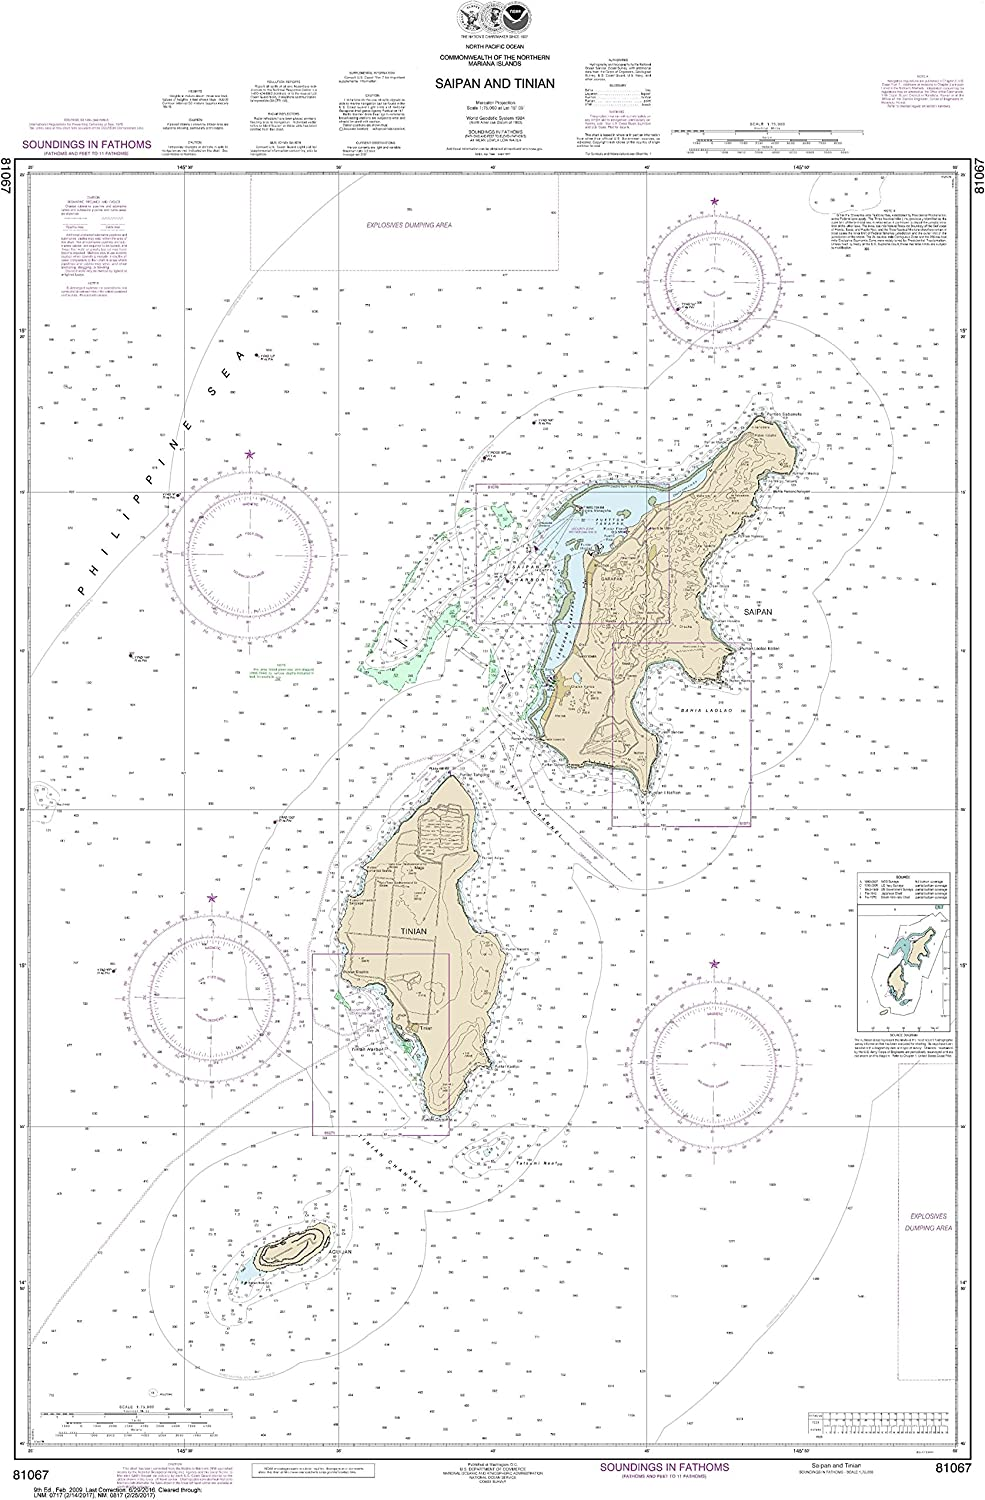 noaa chart 81067 commonwealth of the northern mariana islands saipan and  tinian 46 09 x 30 1 laminated